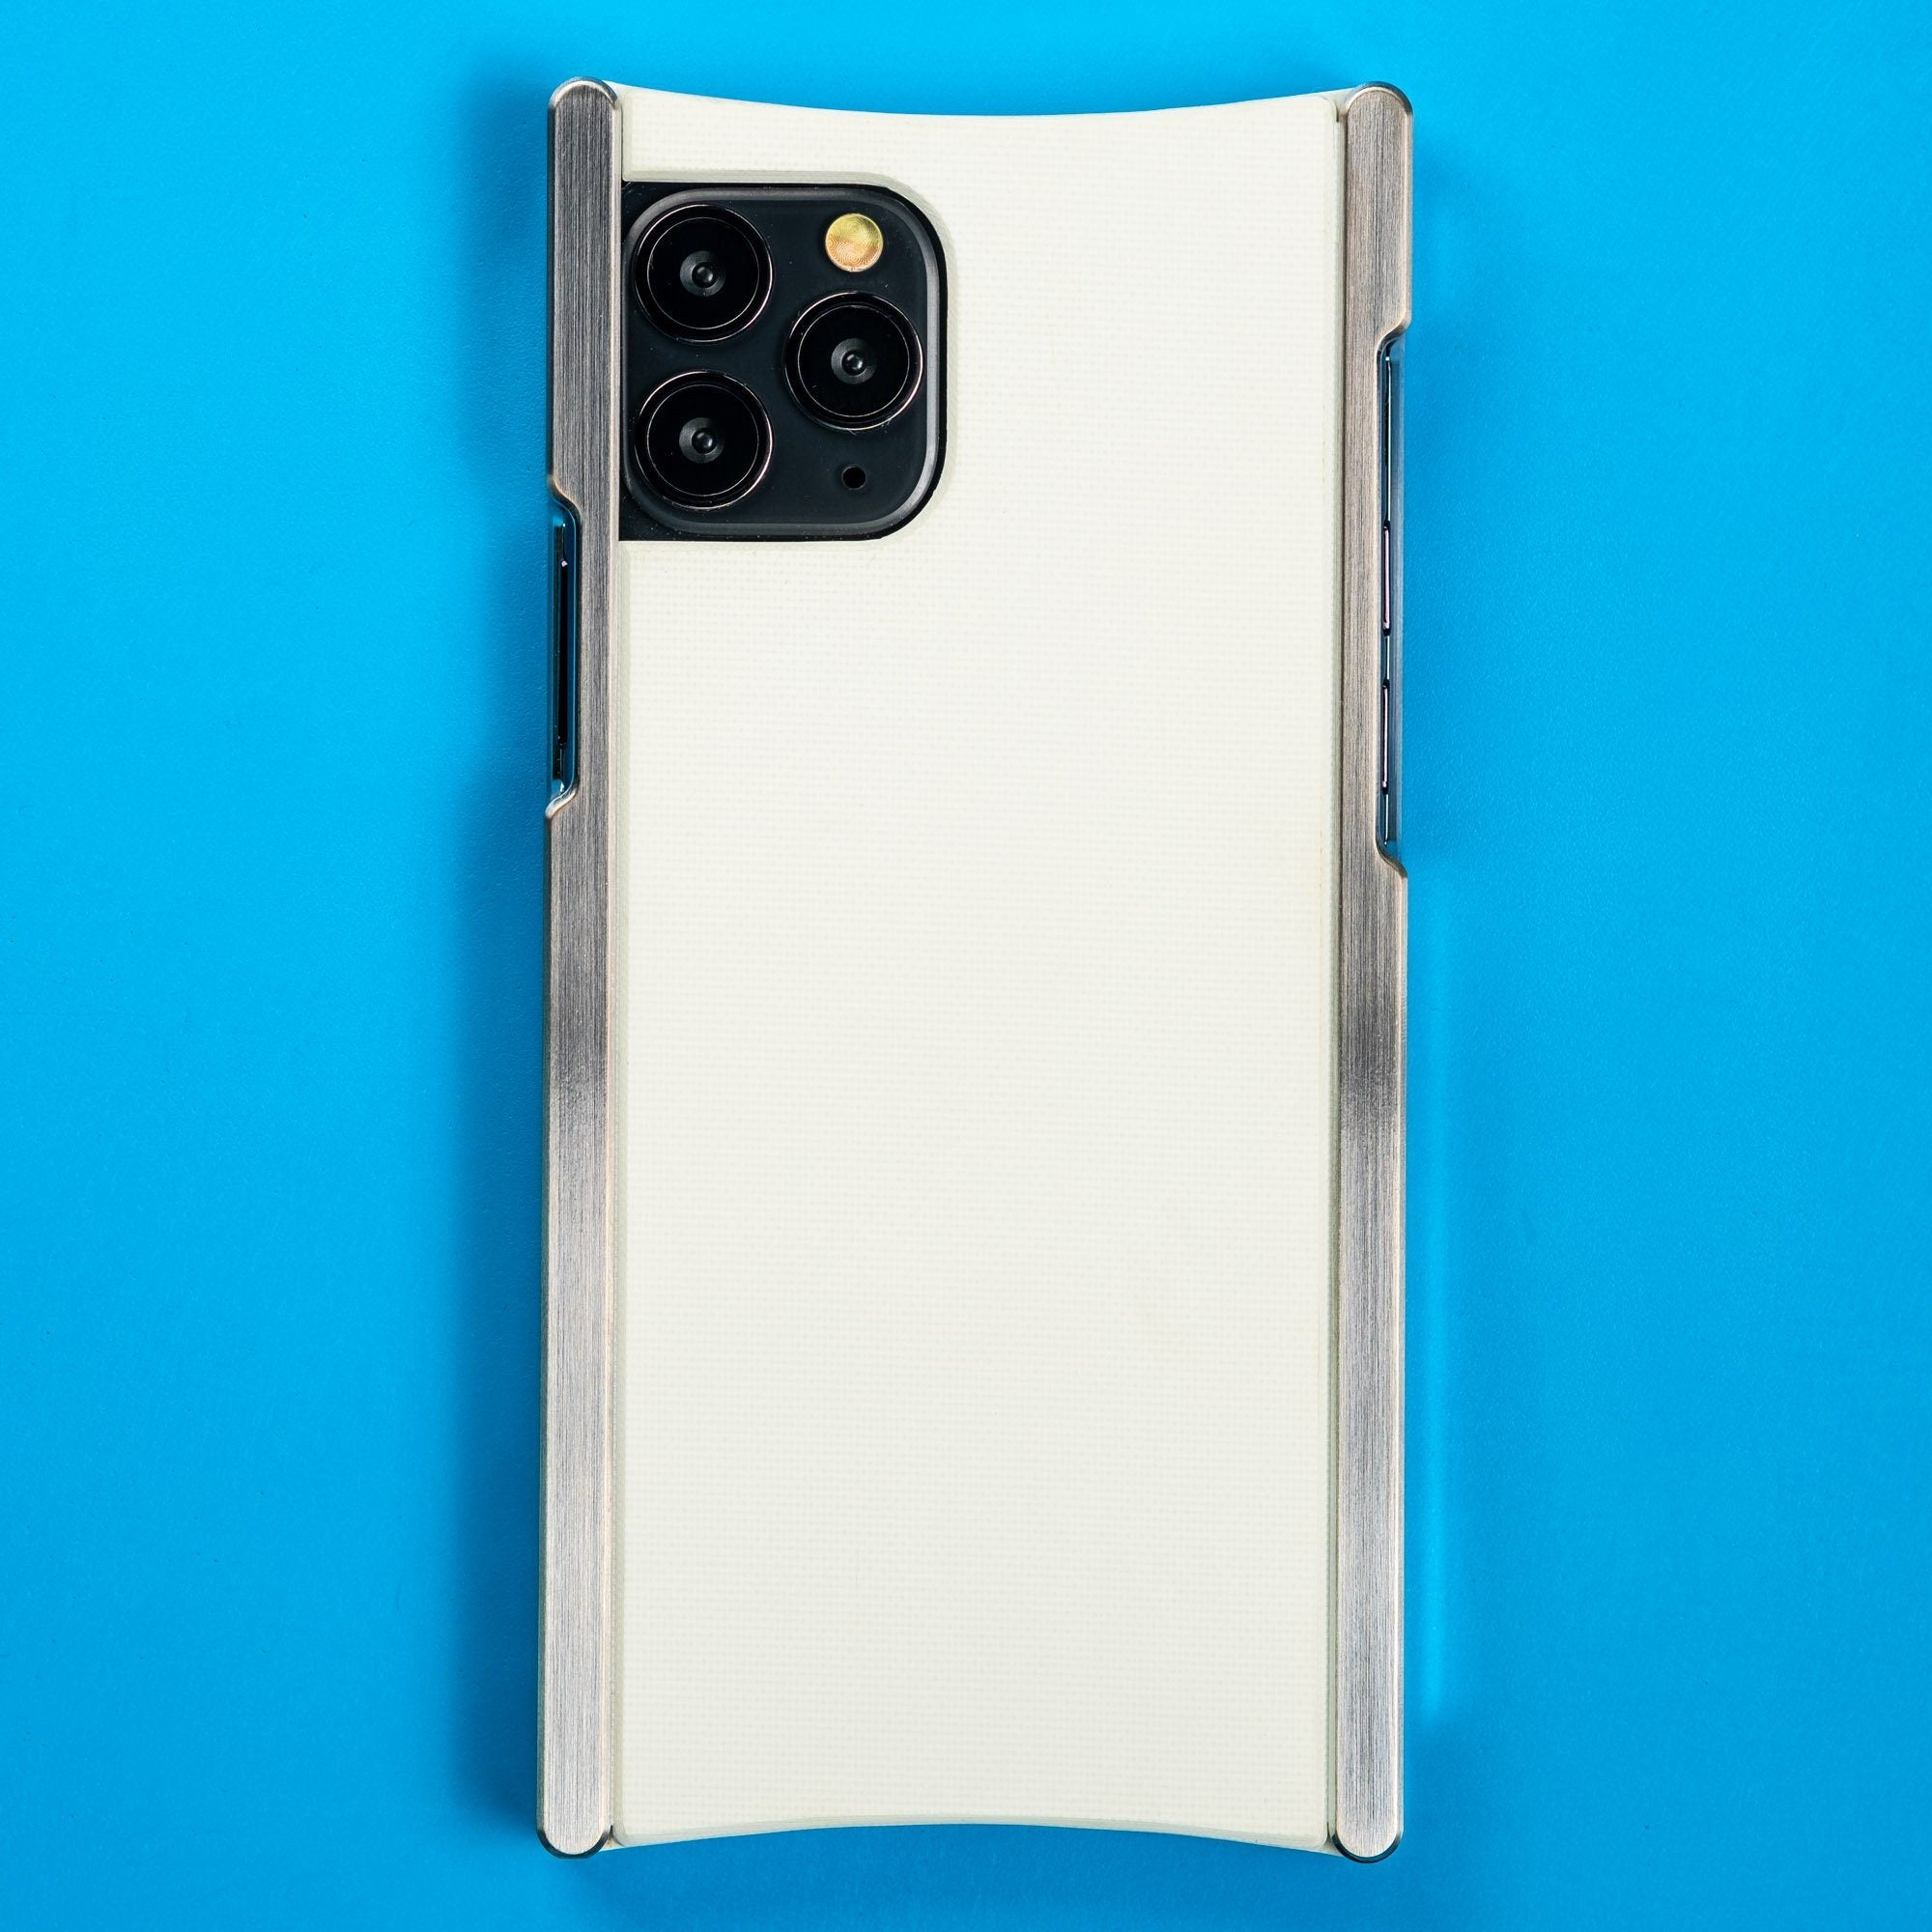 Europa case in Heritage Nickel and White G10 for iPhone 11 Pro